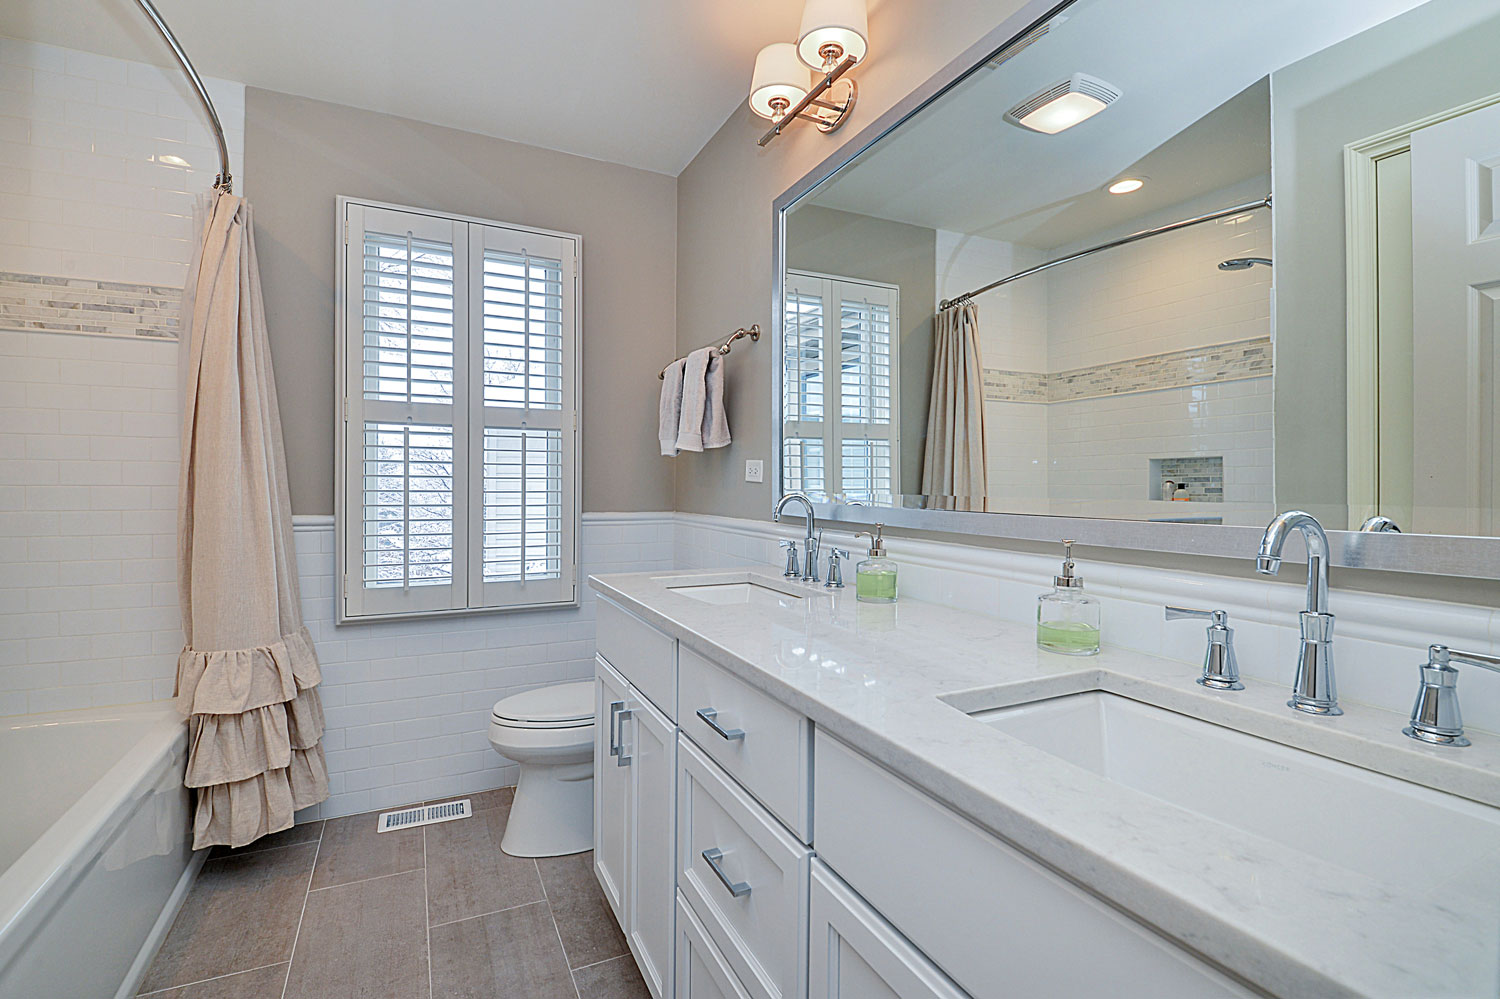 Carl susan 39 s hall bathroom remodel pictures home for Home renovation bathroom ideas